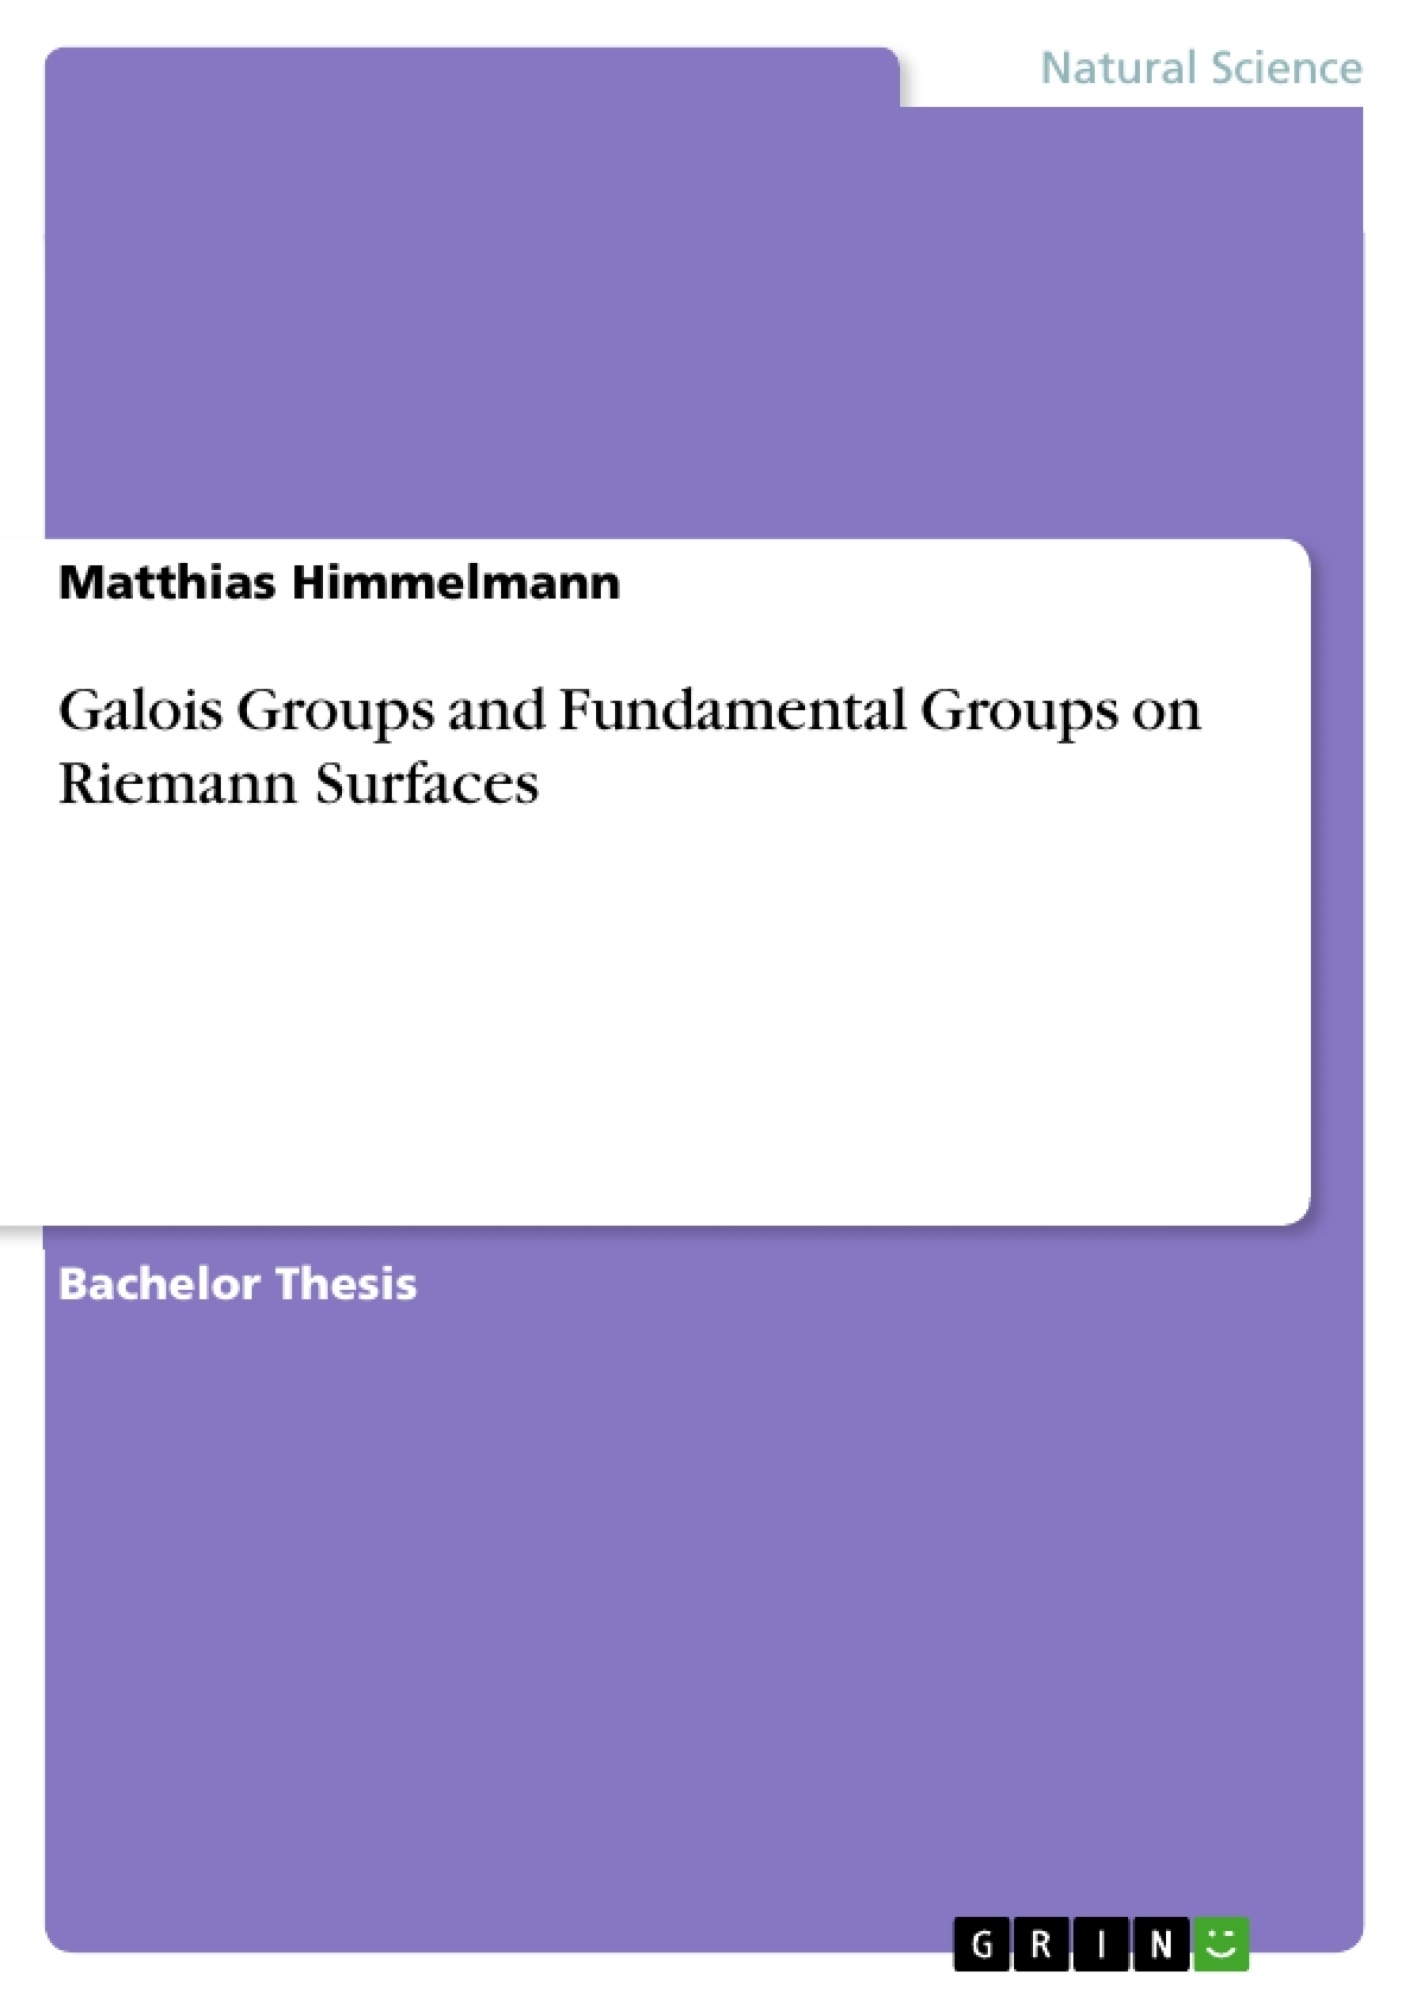 Title: Galois Groups and Fundamental Groups on Riemann Surfaces